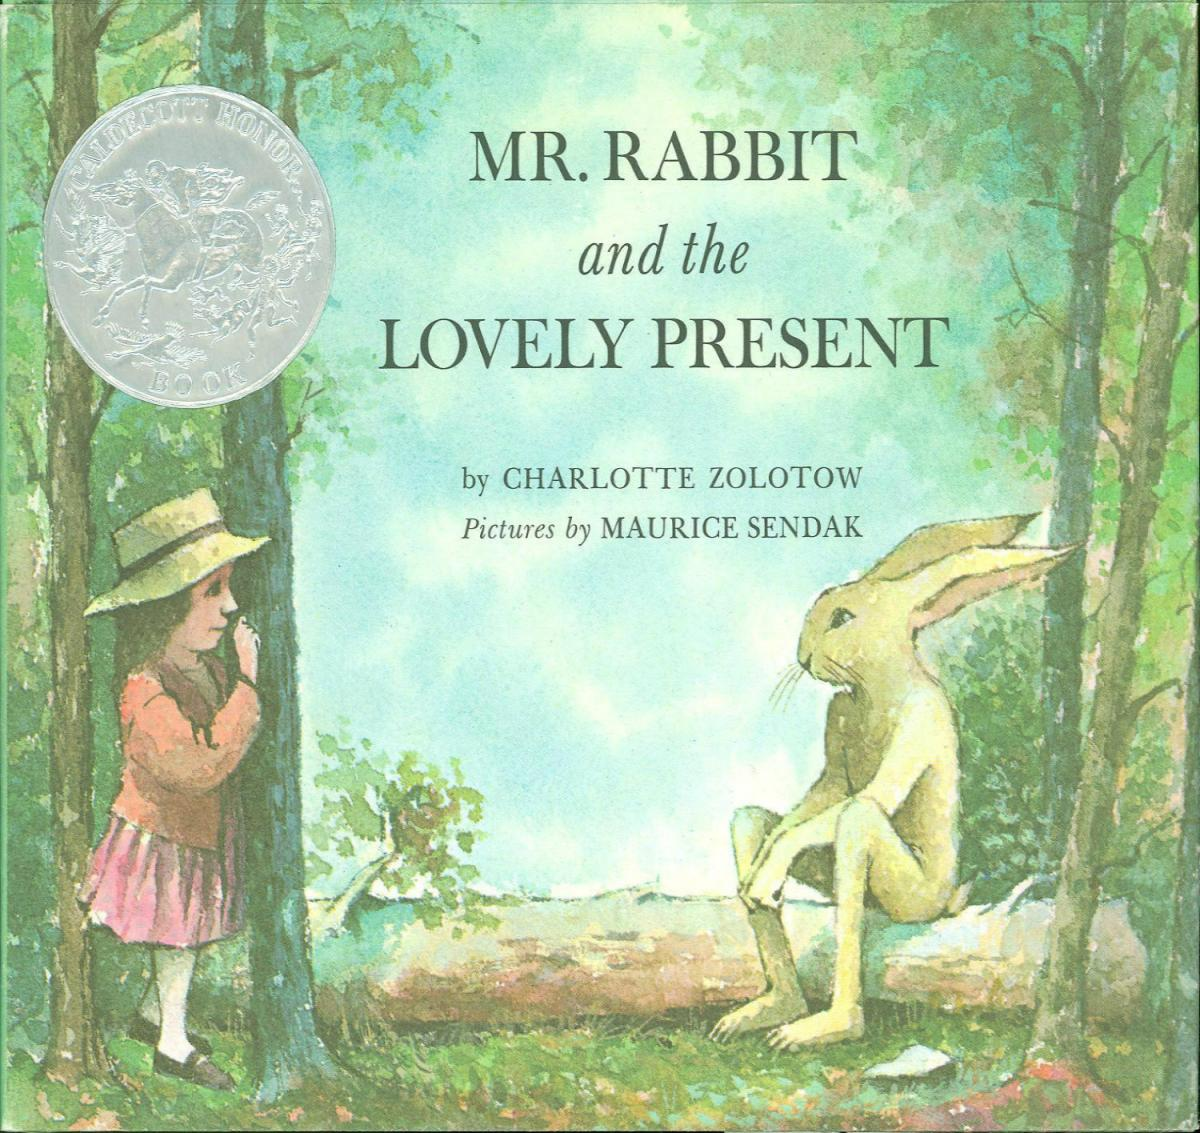 Mr. Rabbit and the Lovely Present - book cover image